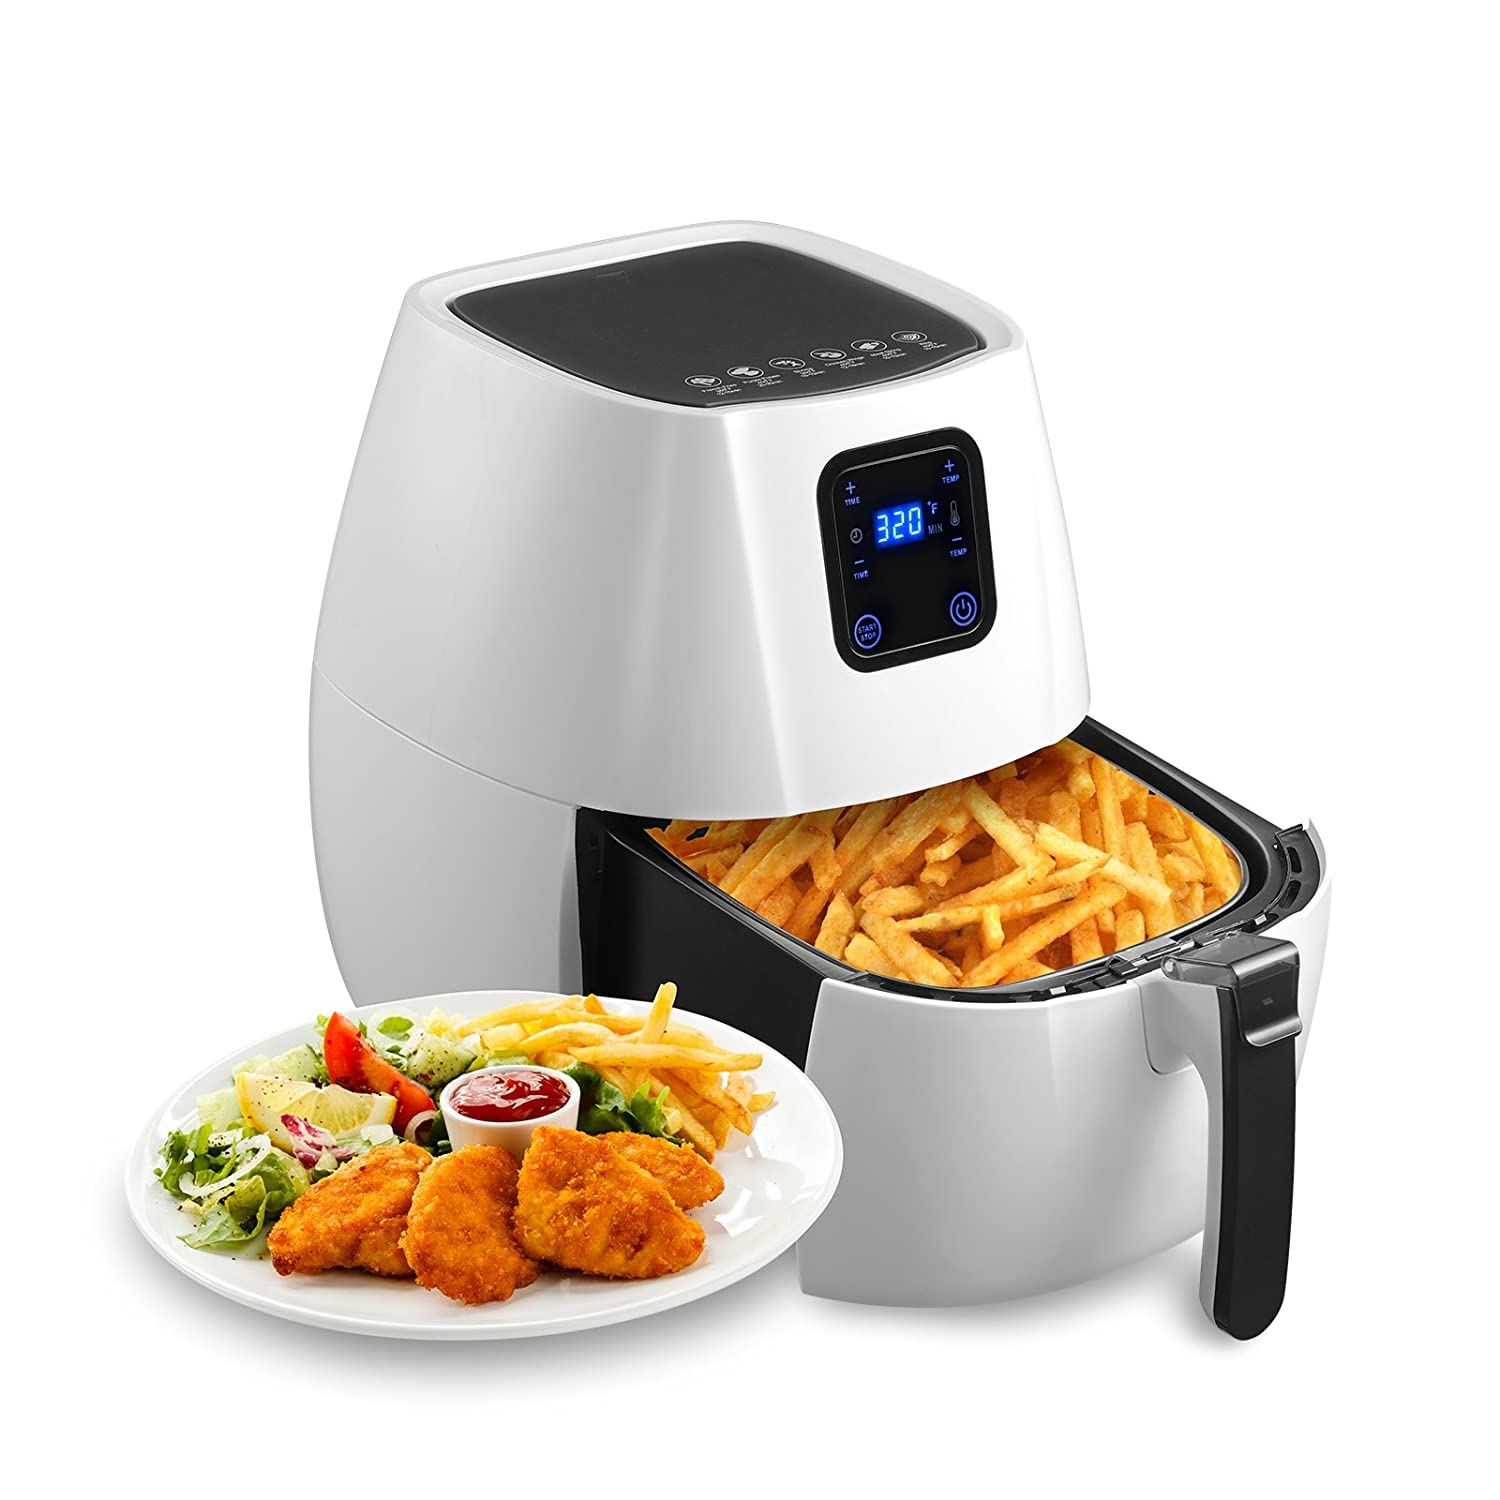 KUPPET Air Fryer-Hot Air/Deep Fryer with Basket/Rapid Air Technology For Less or No Oil/Timer & Temperature Control/8 Cooking Presets/Included Recipe,Steamer,Fryer Pan 1350W (4.76QT Digital, White)